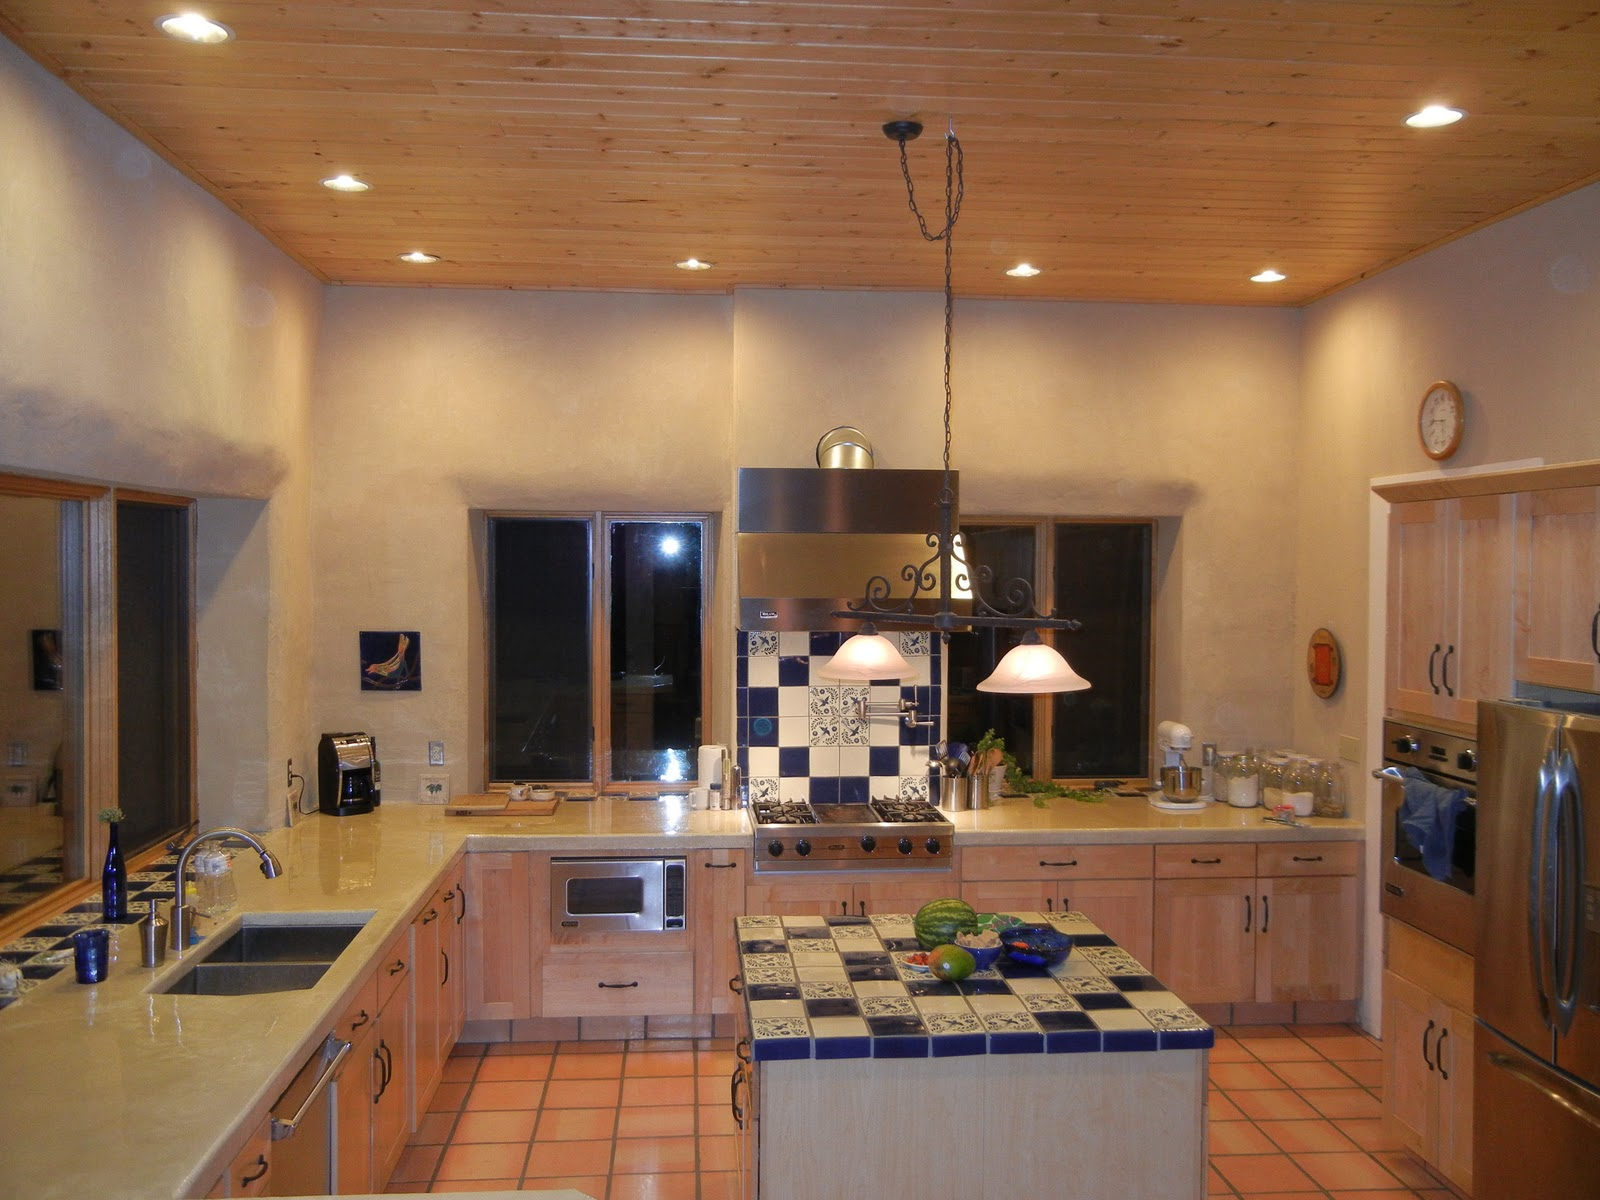 Kitchens with Recessed Lighting